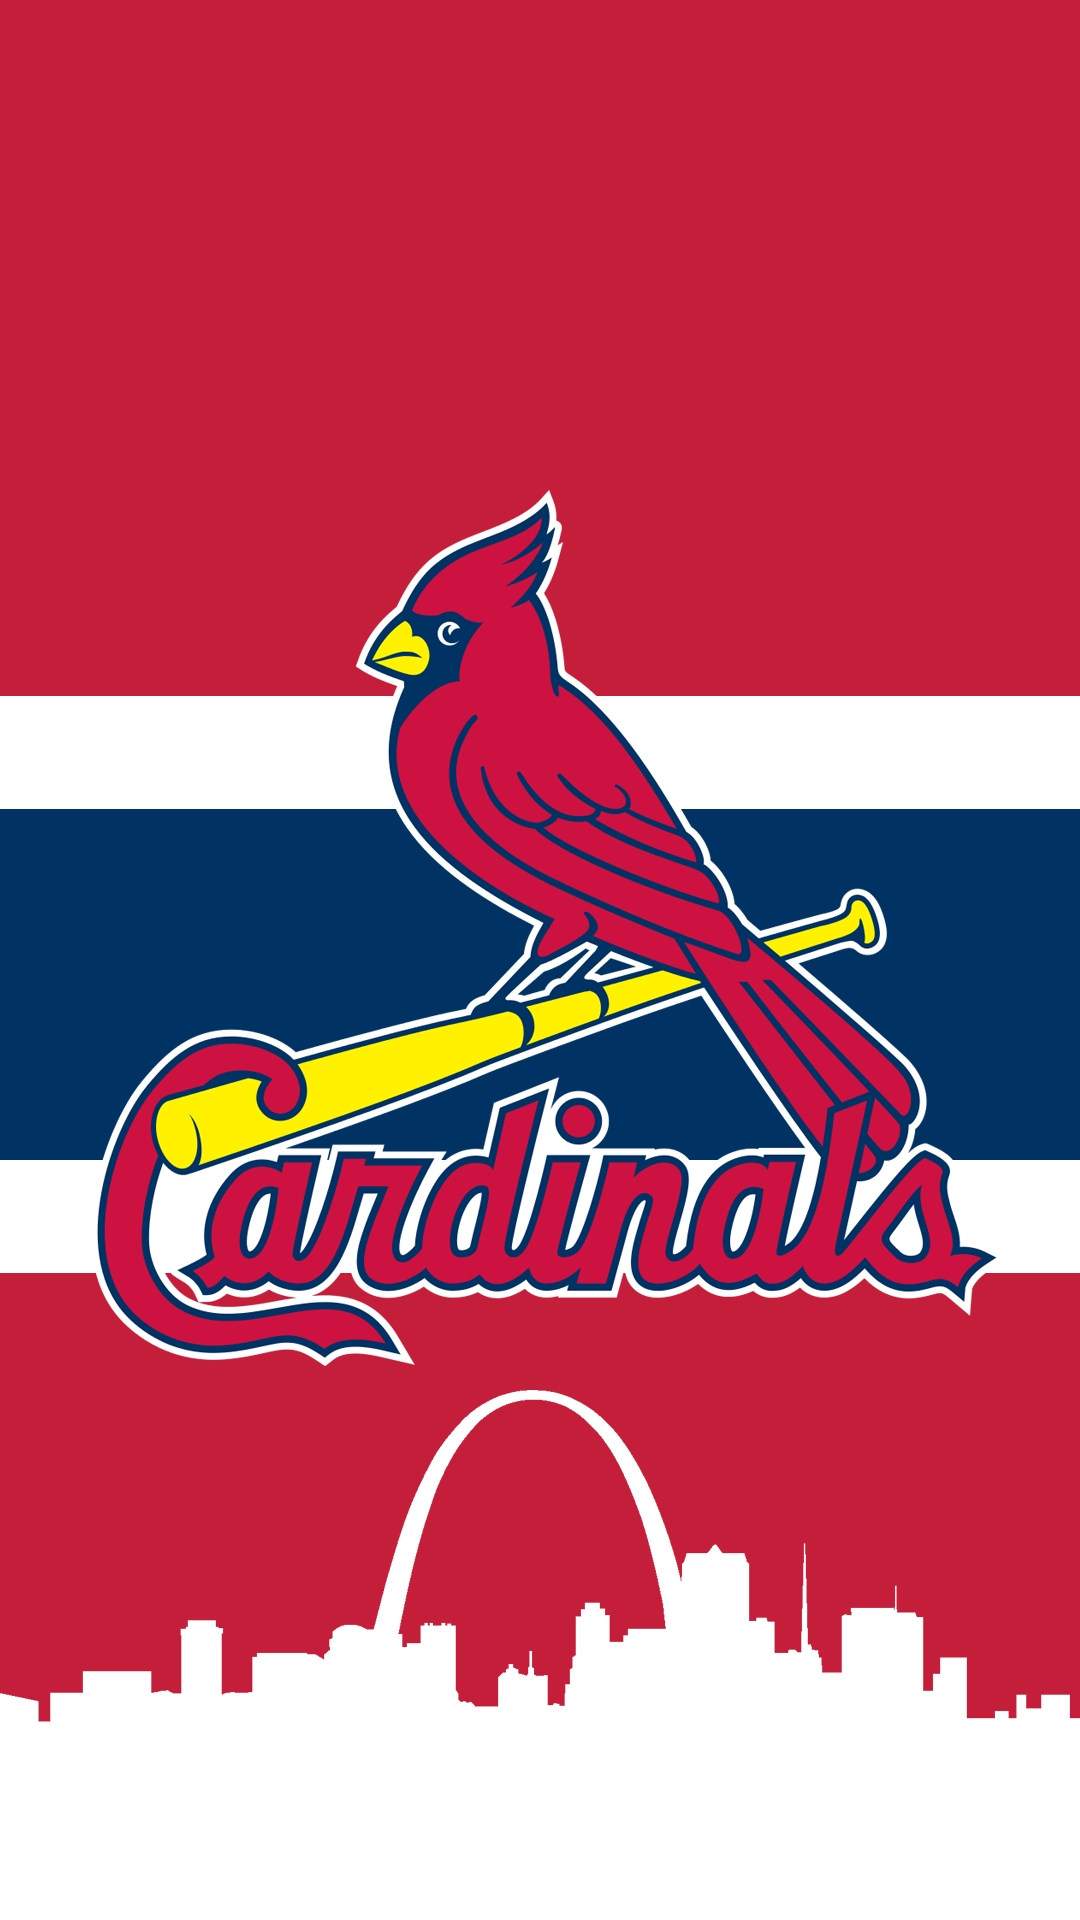 Title : cardinals wallpaper iphone 6 – impremedia. Dimension : 1080 x 1920. File Type : JPG/JPEG